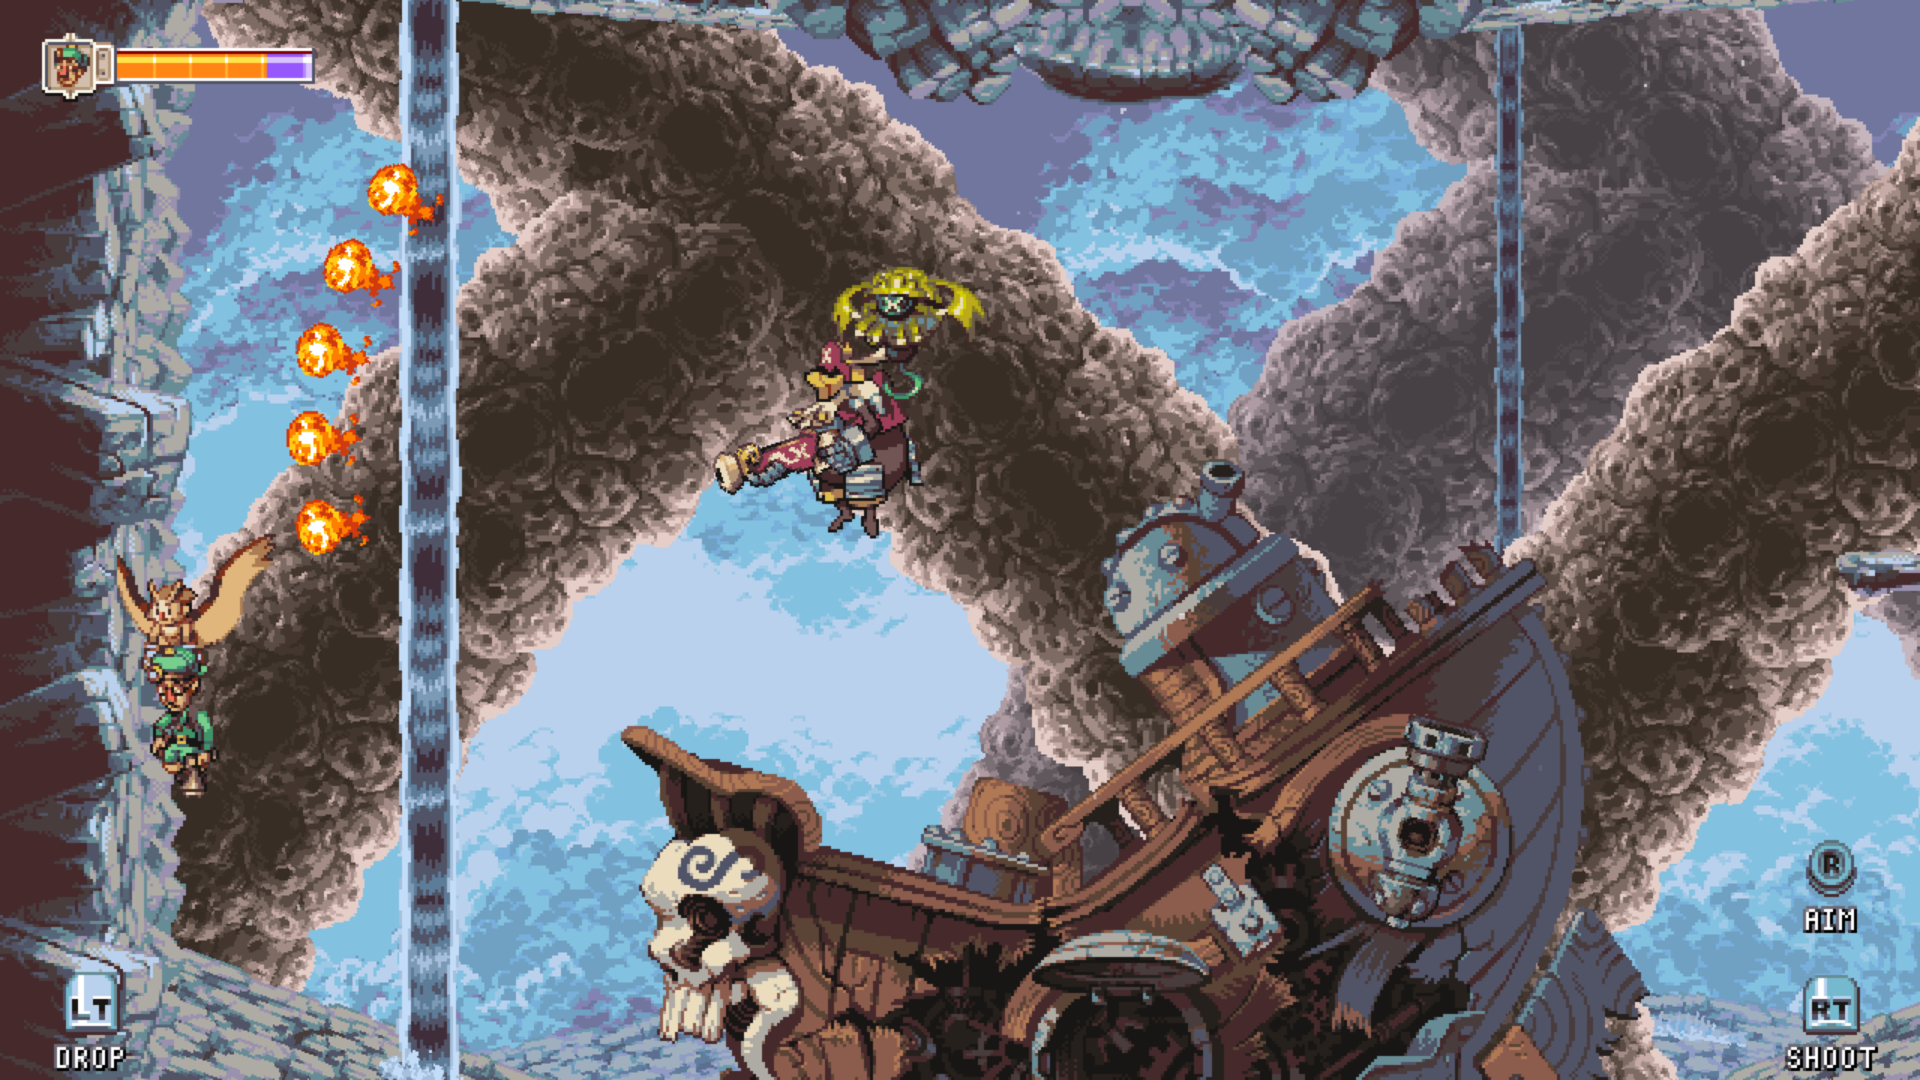 Figure 7 - In this fight you attack the pirate that is flying around but also have to destroy the ship that shoots at you when his captain recovers